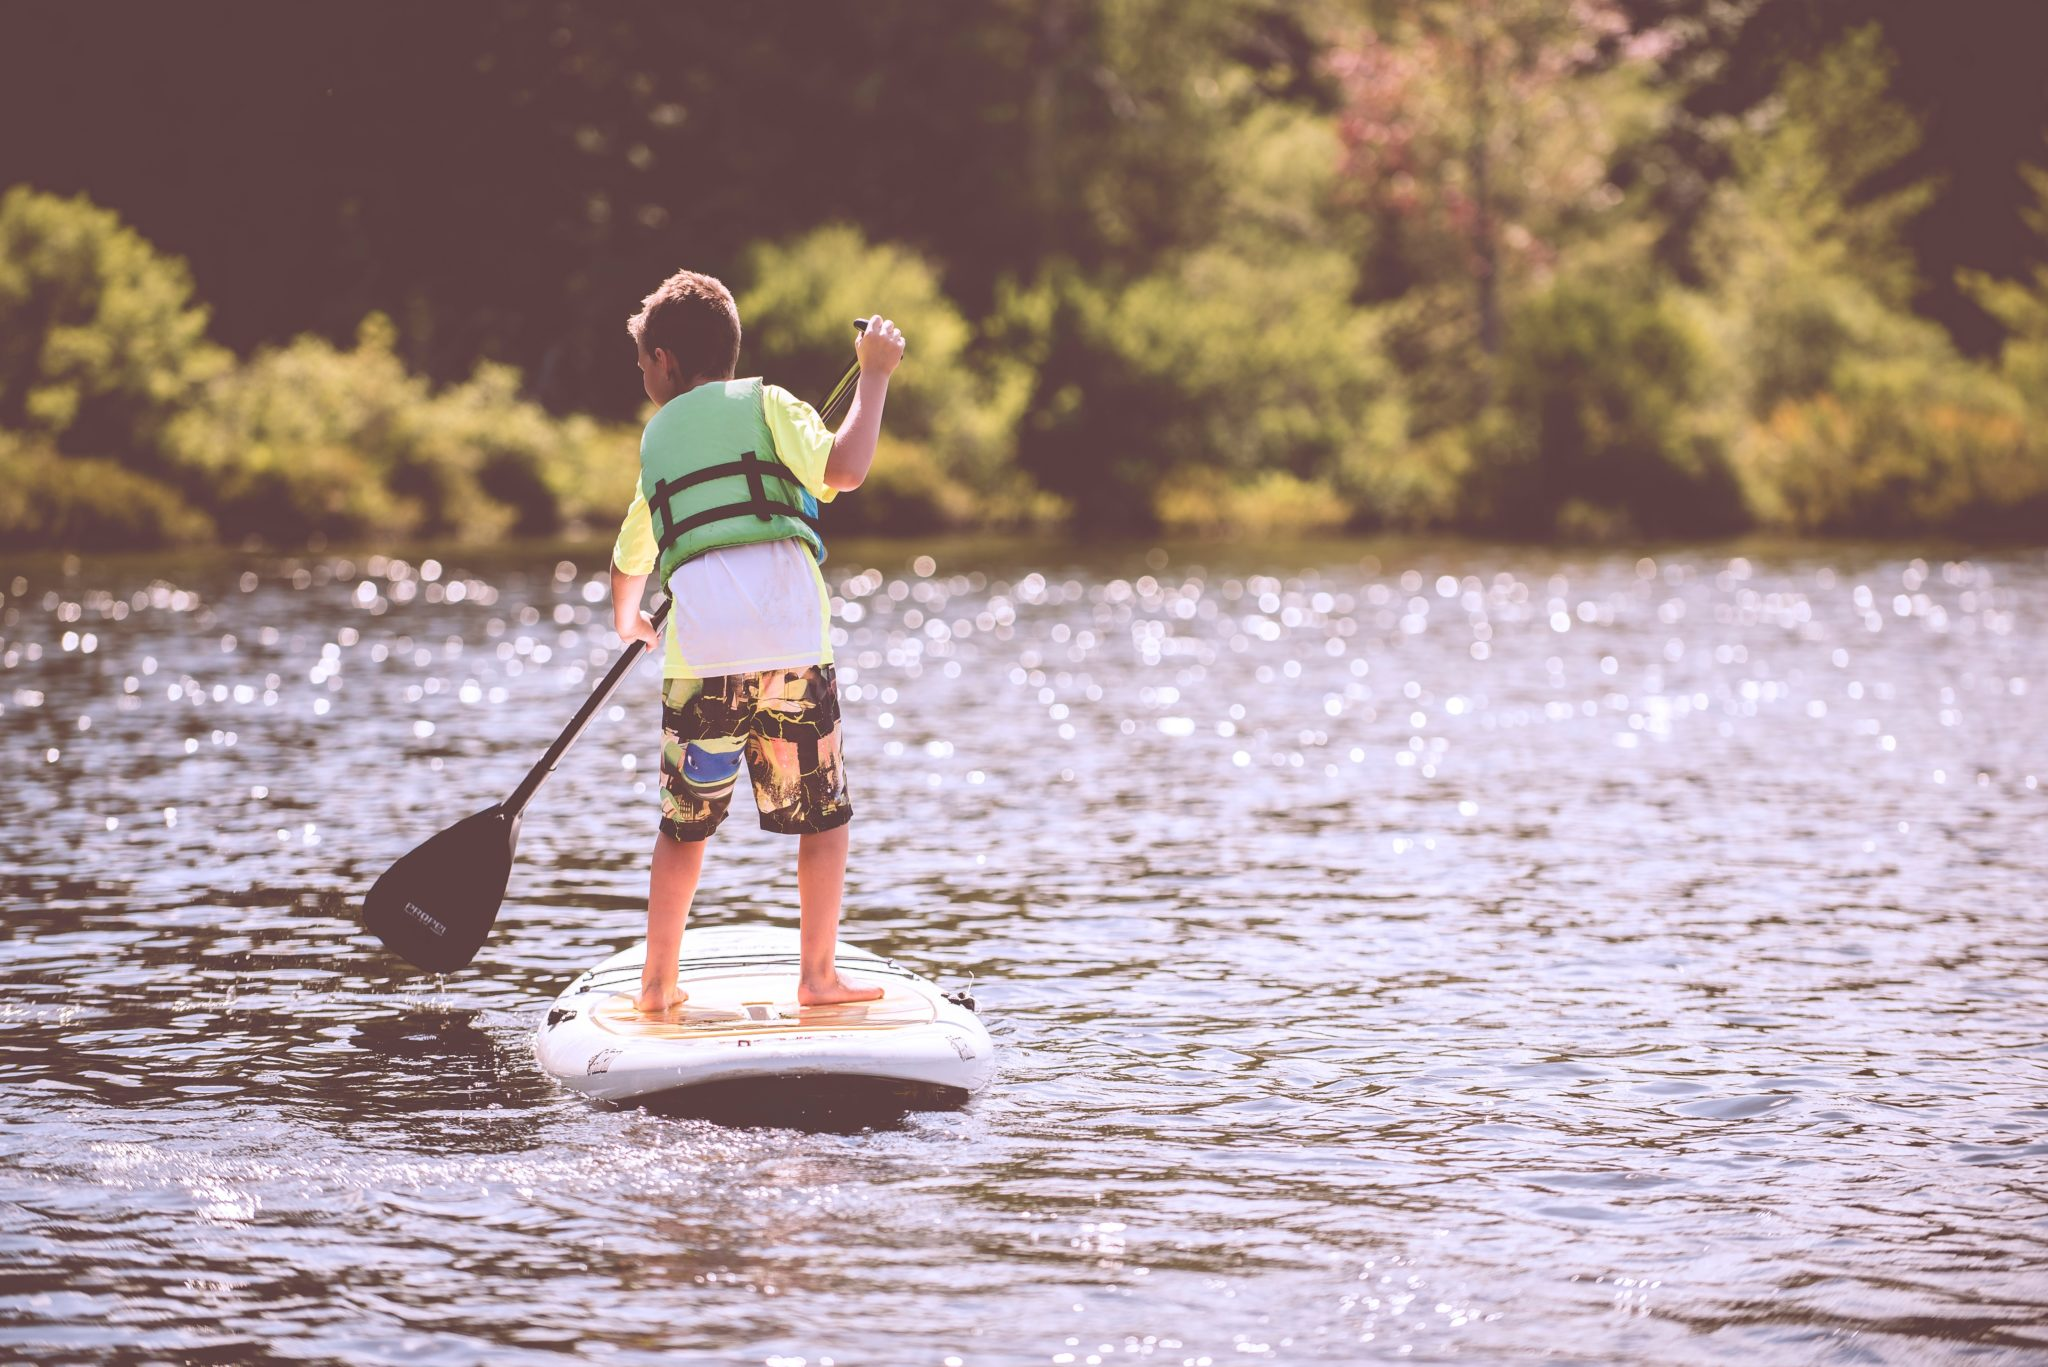 7 summer activities you must try